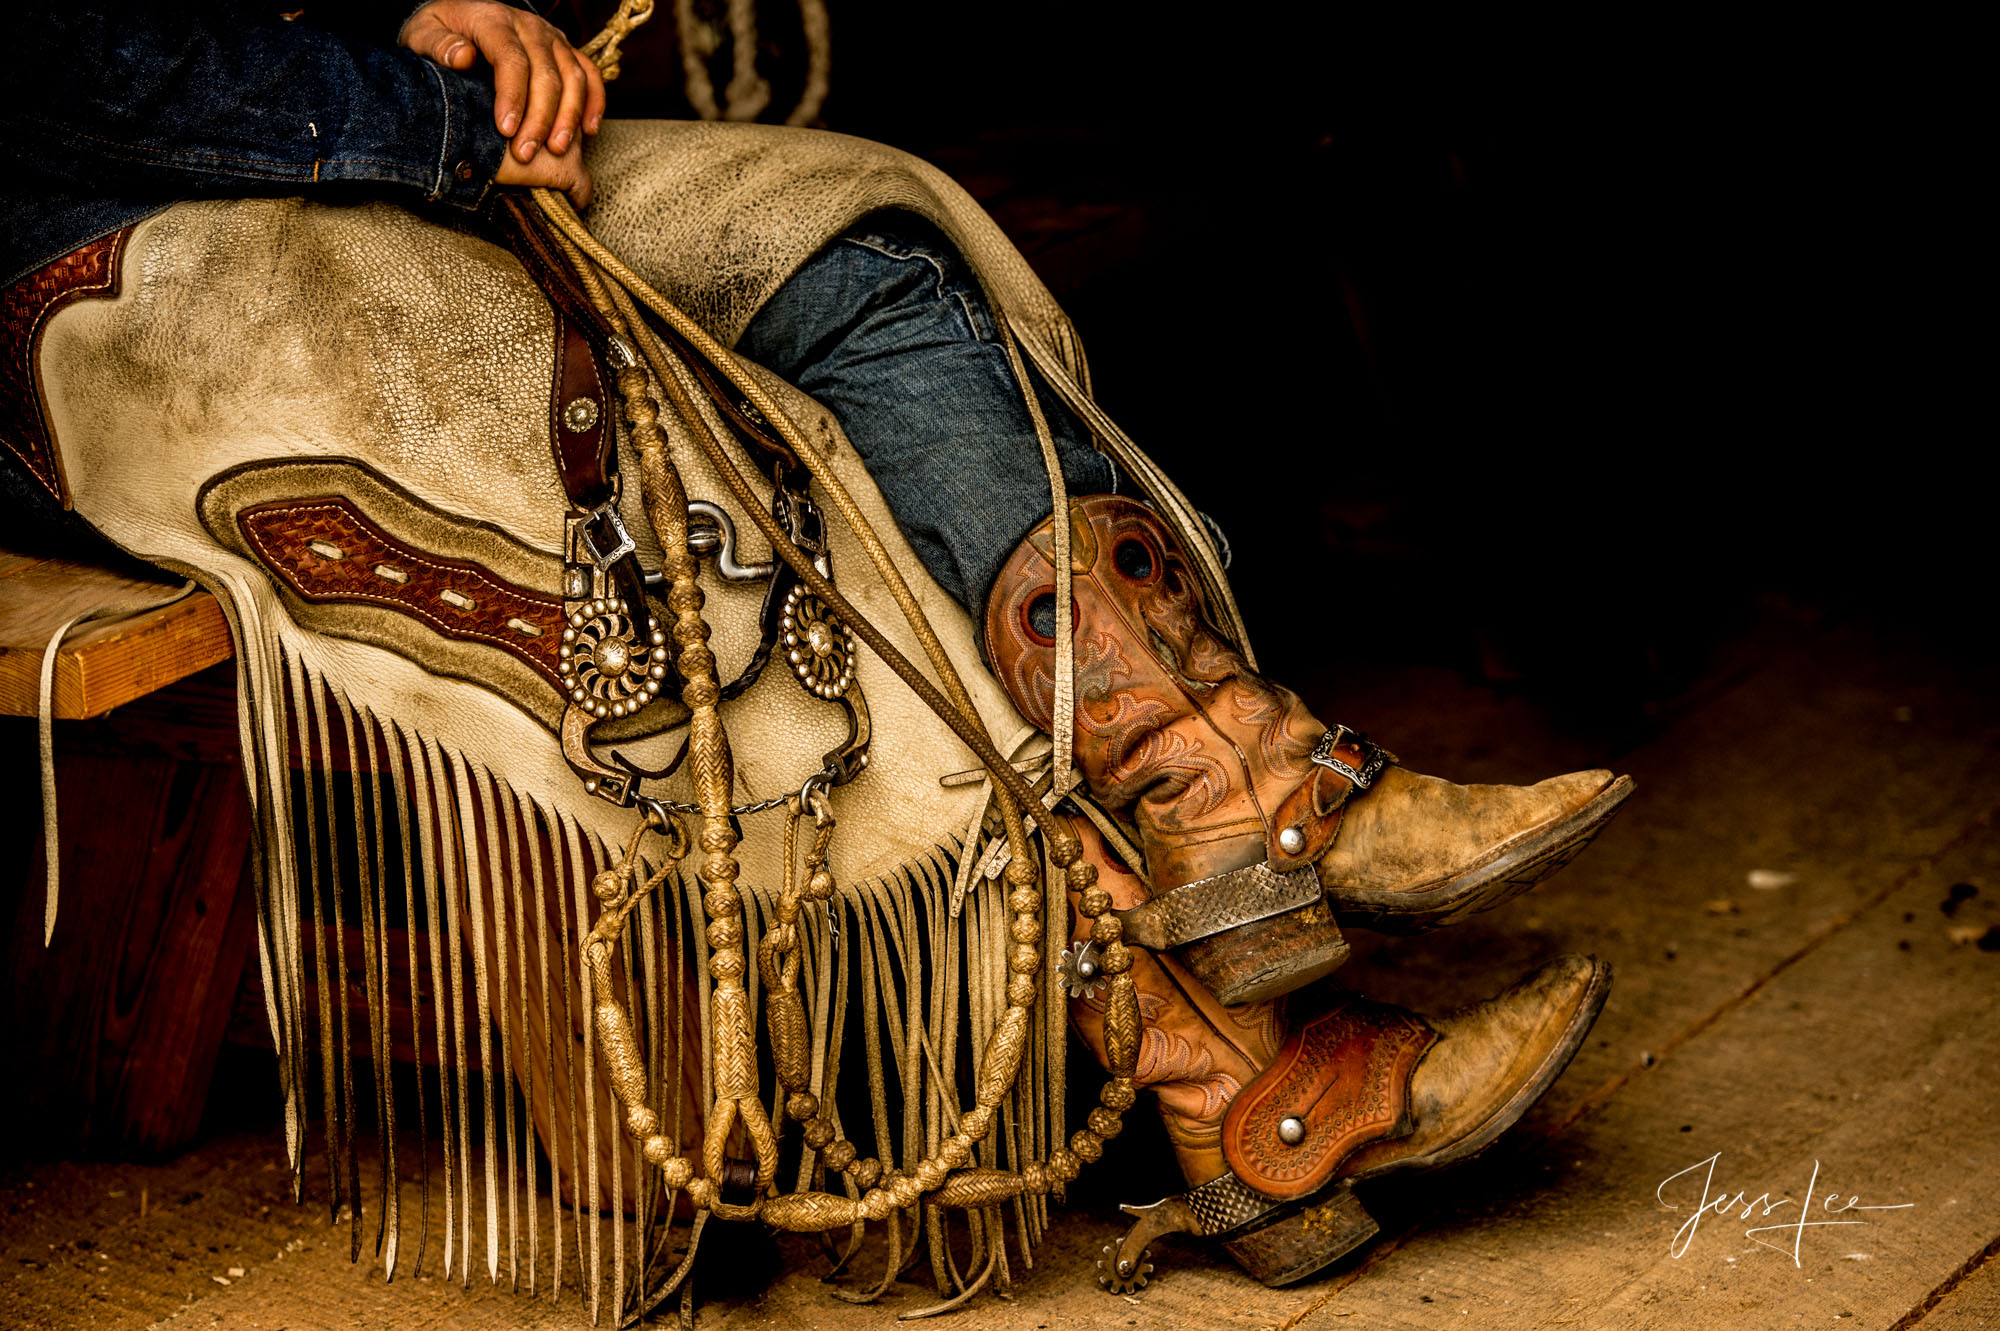 cowboy, western, Peter Lik, cowgirl, ranch, museum, fine art, print, jess lee, artist, photographer, limited edition, high quality, high resolution, beautiful, artistic,  stoecklein, klassy,, photo